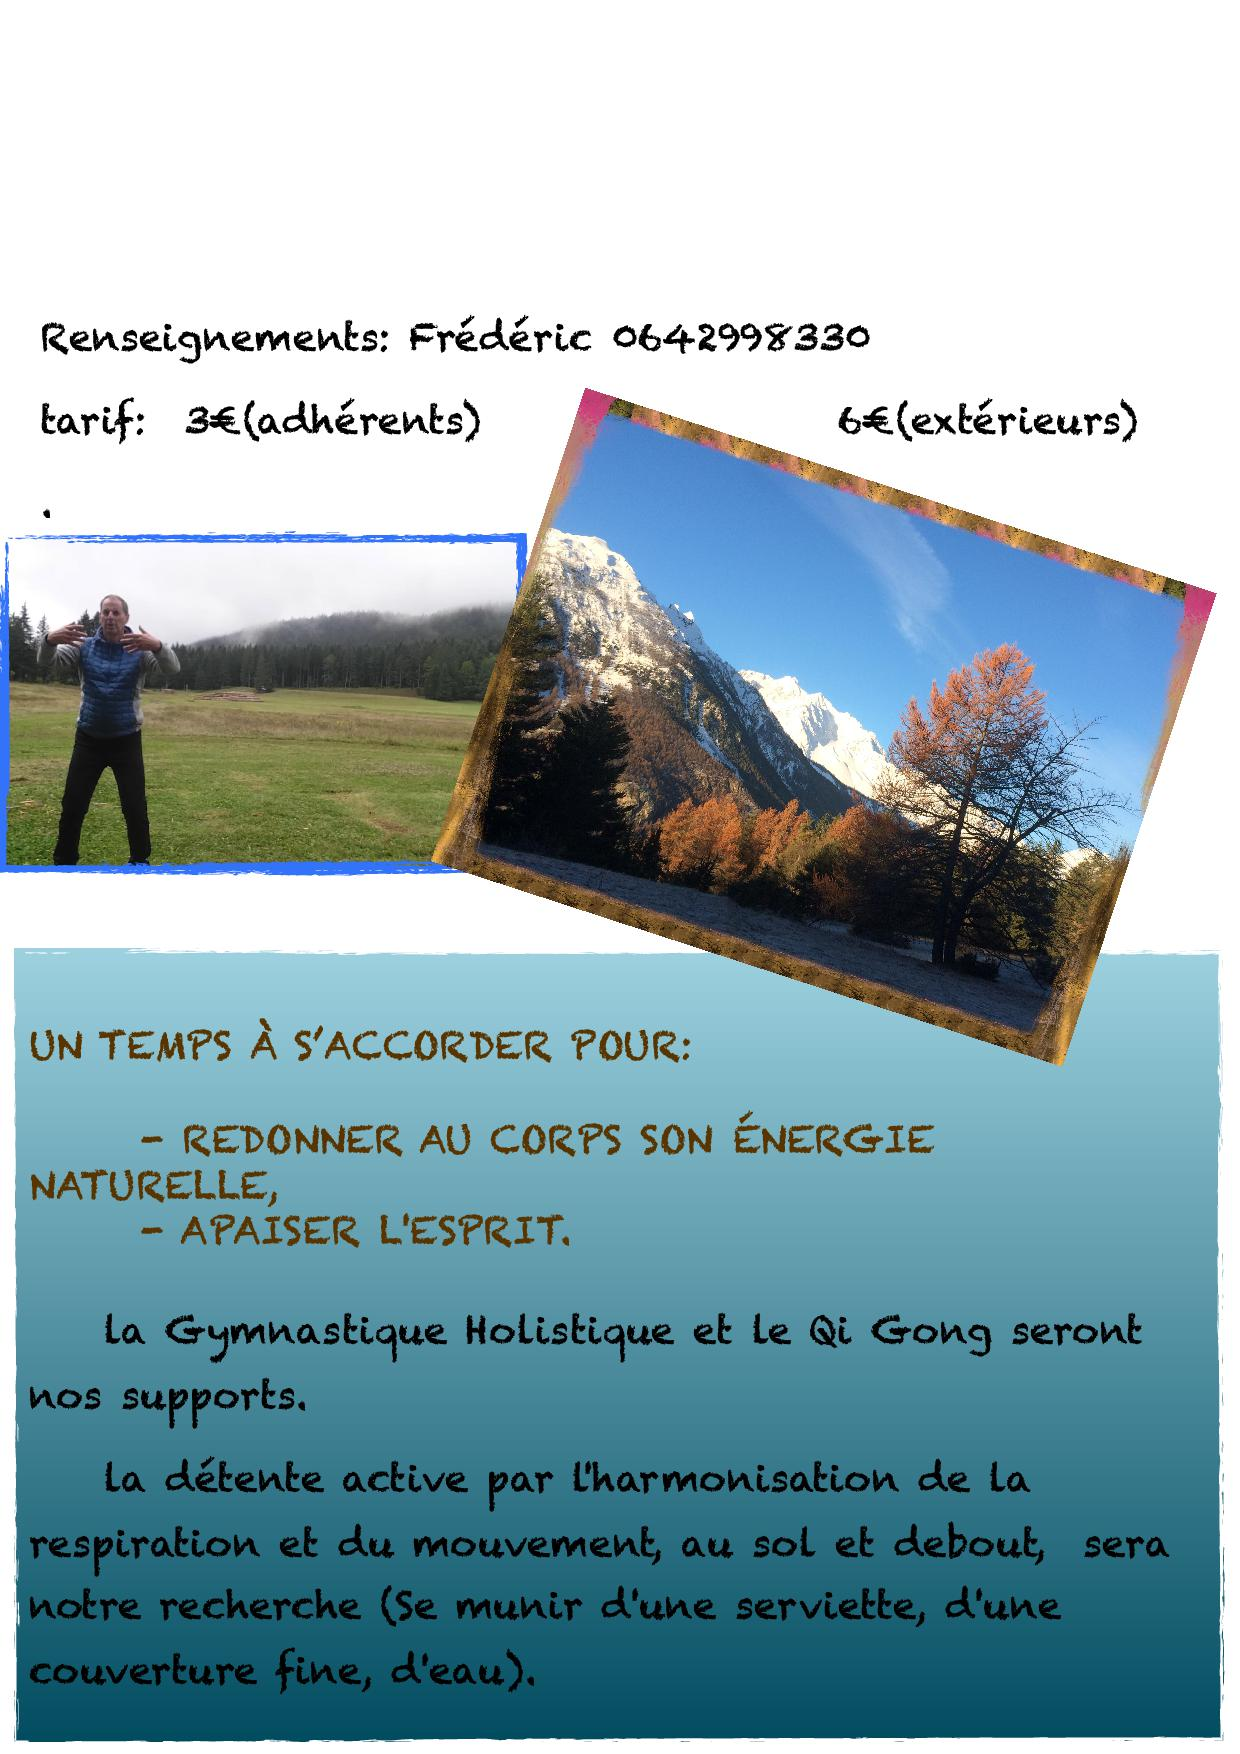 Stage 2 decembre 2017 fred